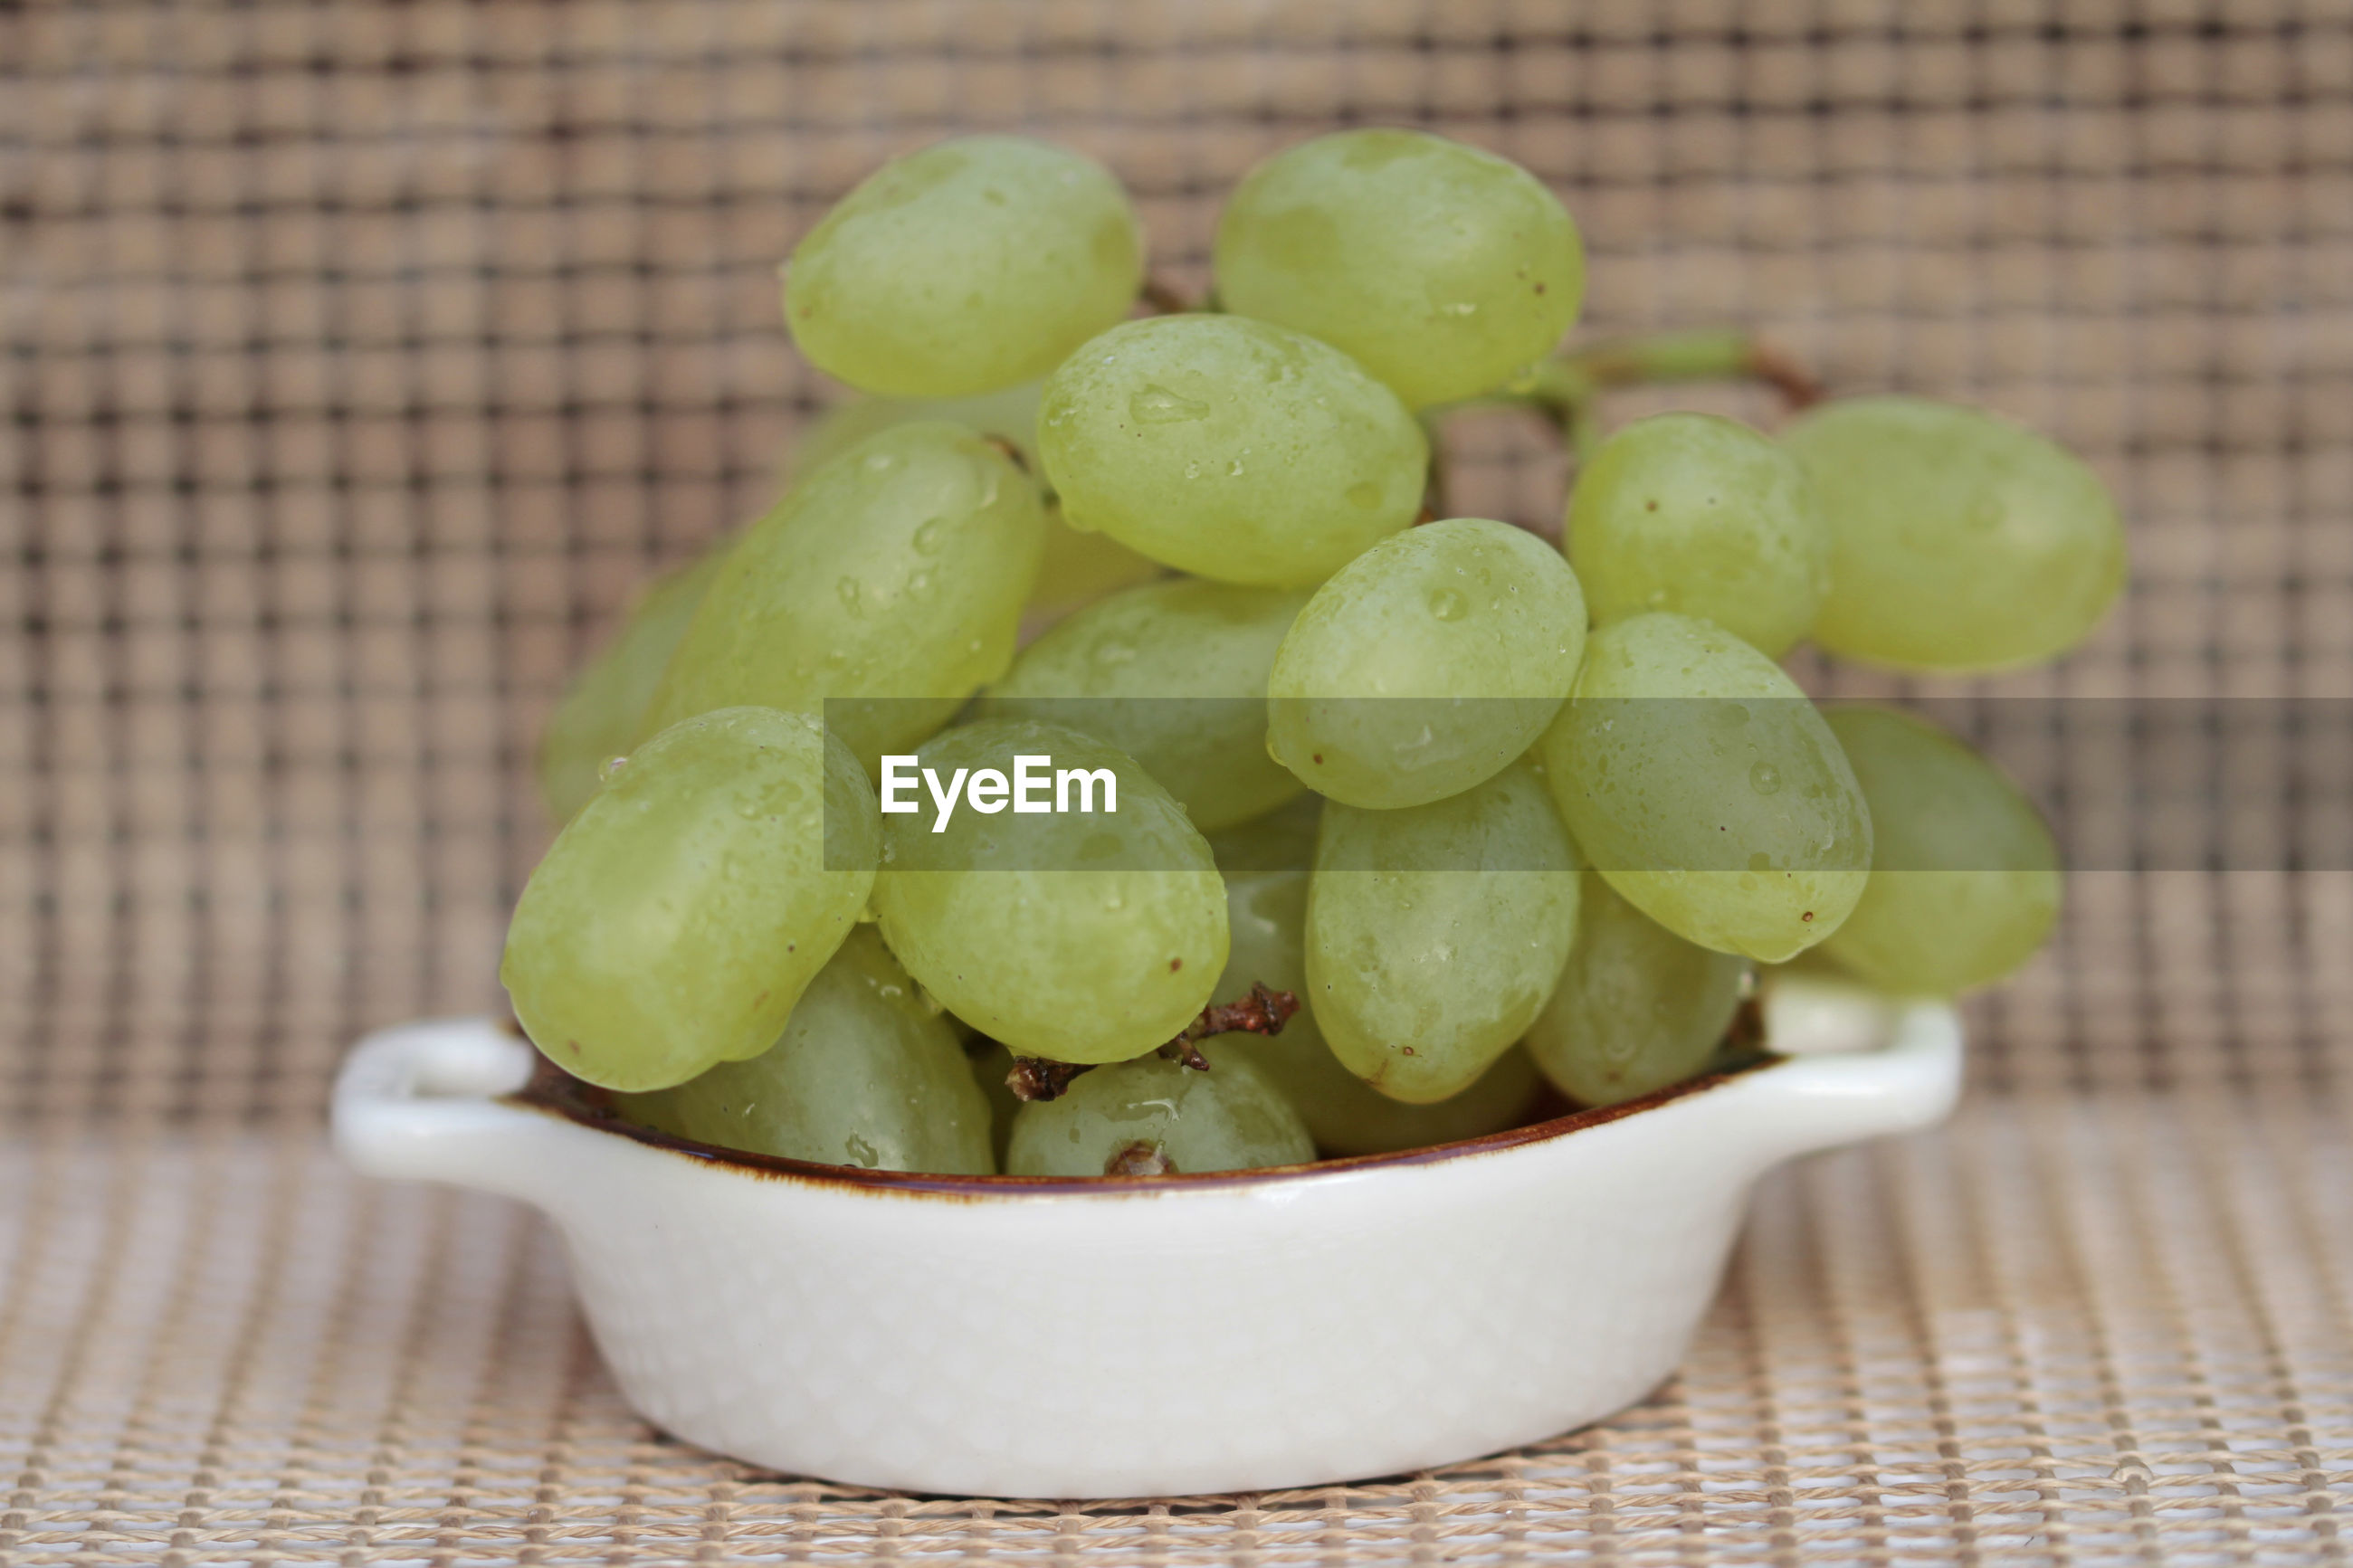 CLOSE-UP OF GRAPES IN CONTAINER ON TABLE